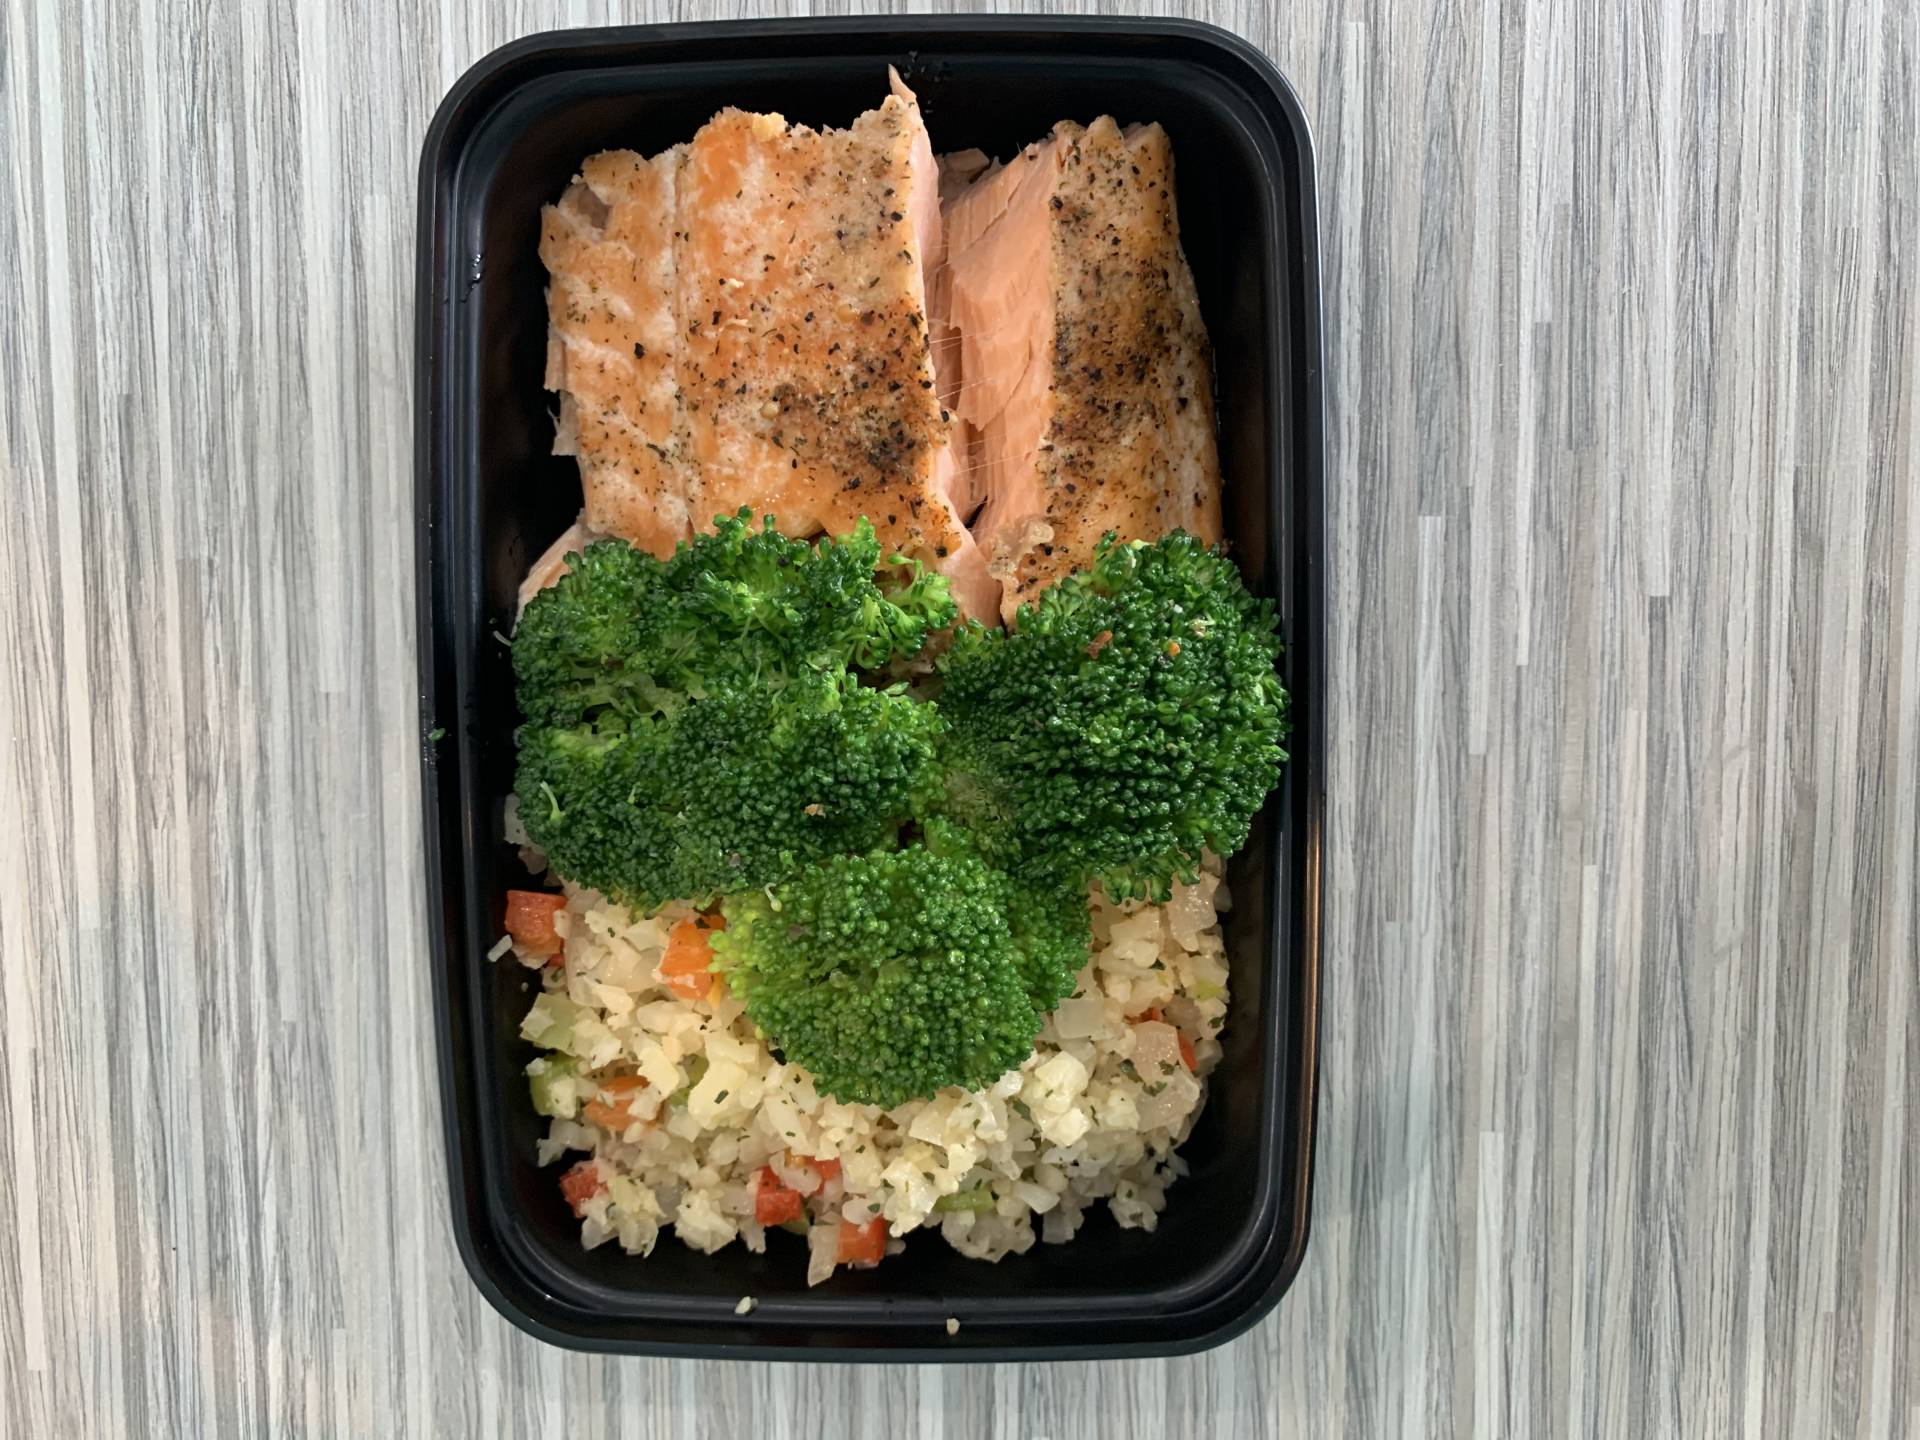 Atlantic Salmon, Cauliflower Rice and Broccoli